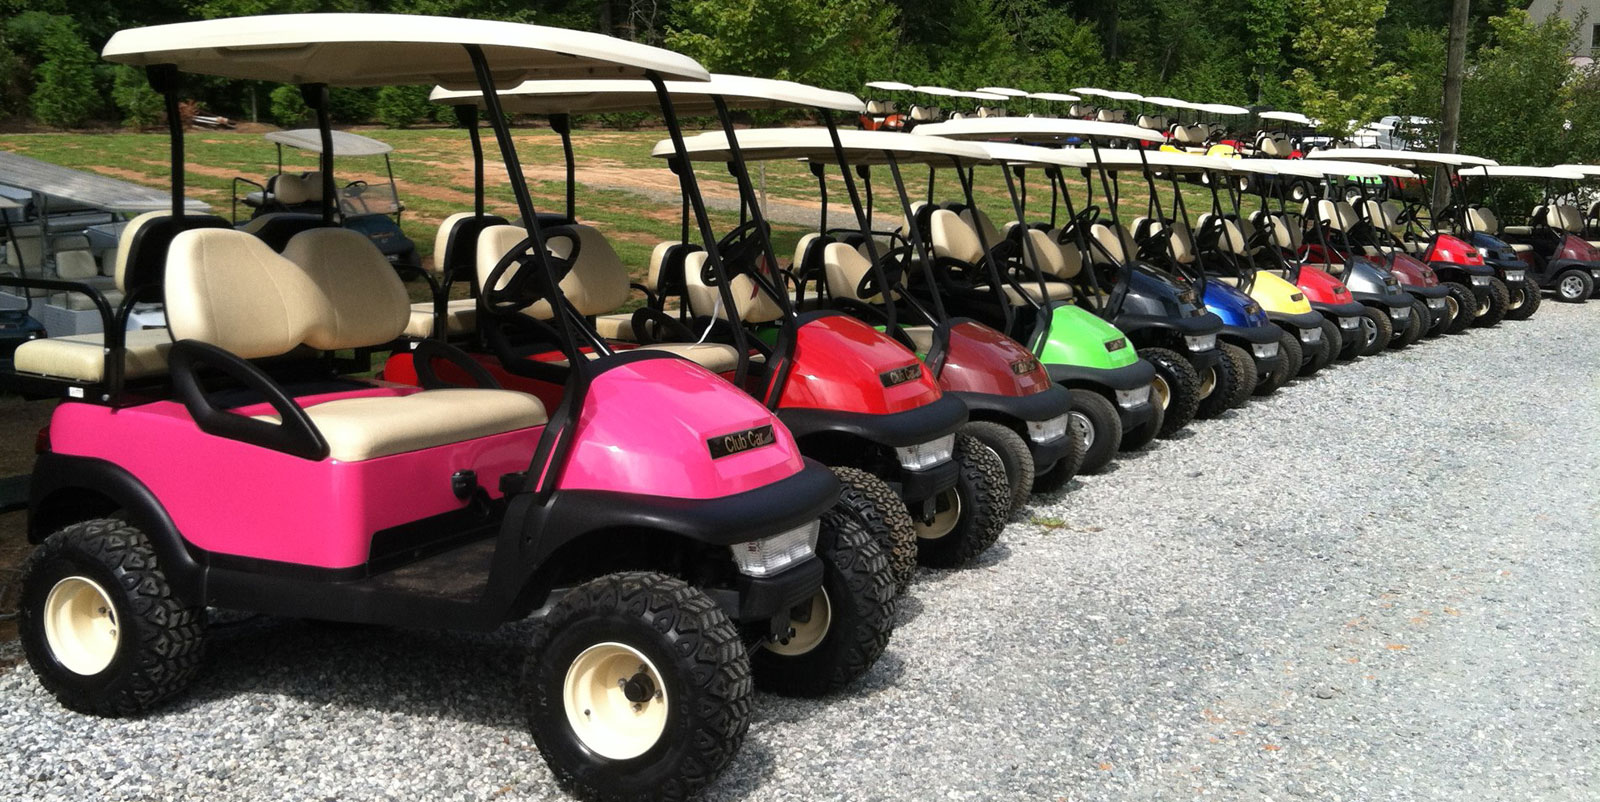 Used Tires Greensboro Nc >> Brad's Golf Cars, Inc. - The Golf Cart Leader in the Triad of NC, Greensboro, Winston-Salem ...